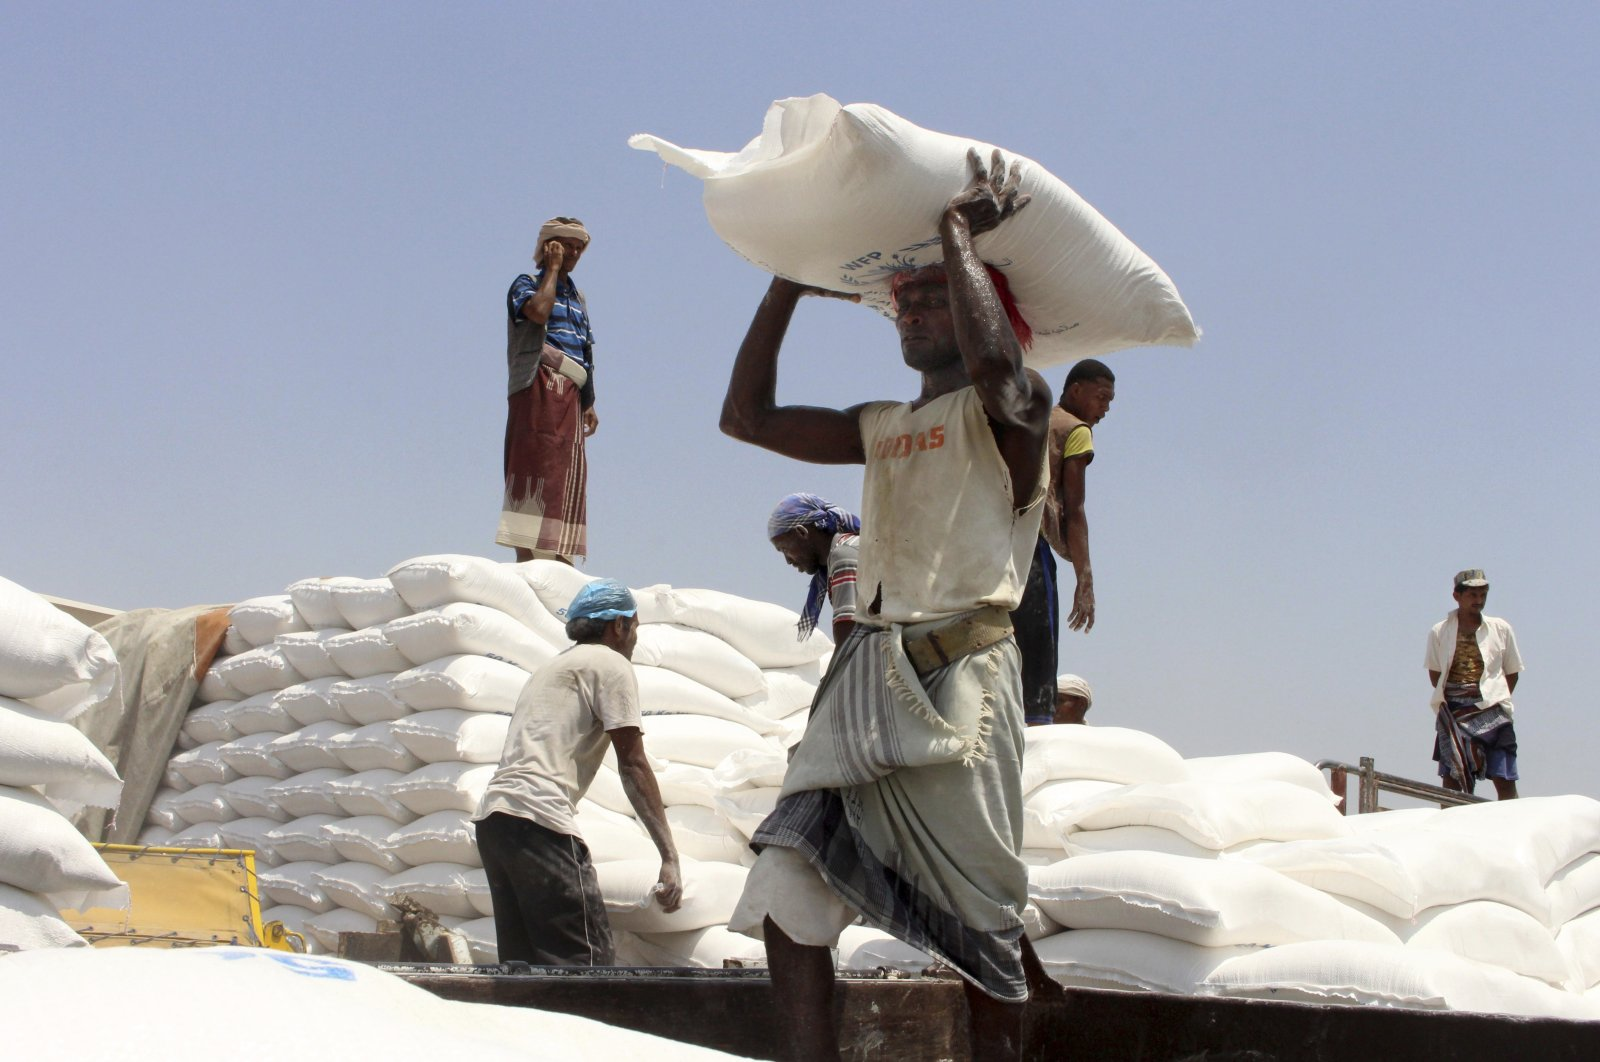 In this file photo, men deliver U.N. World Food Programme (WFP) aid in Aslam, Hajjah, Yemen on Sept. 21, 2018. (AP Photo)